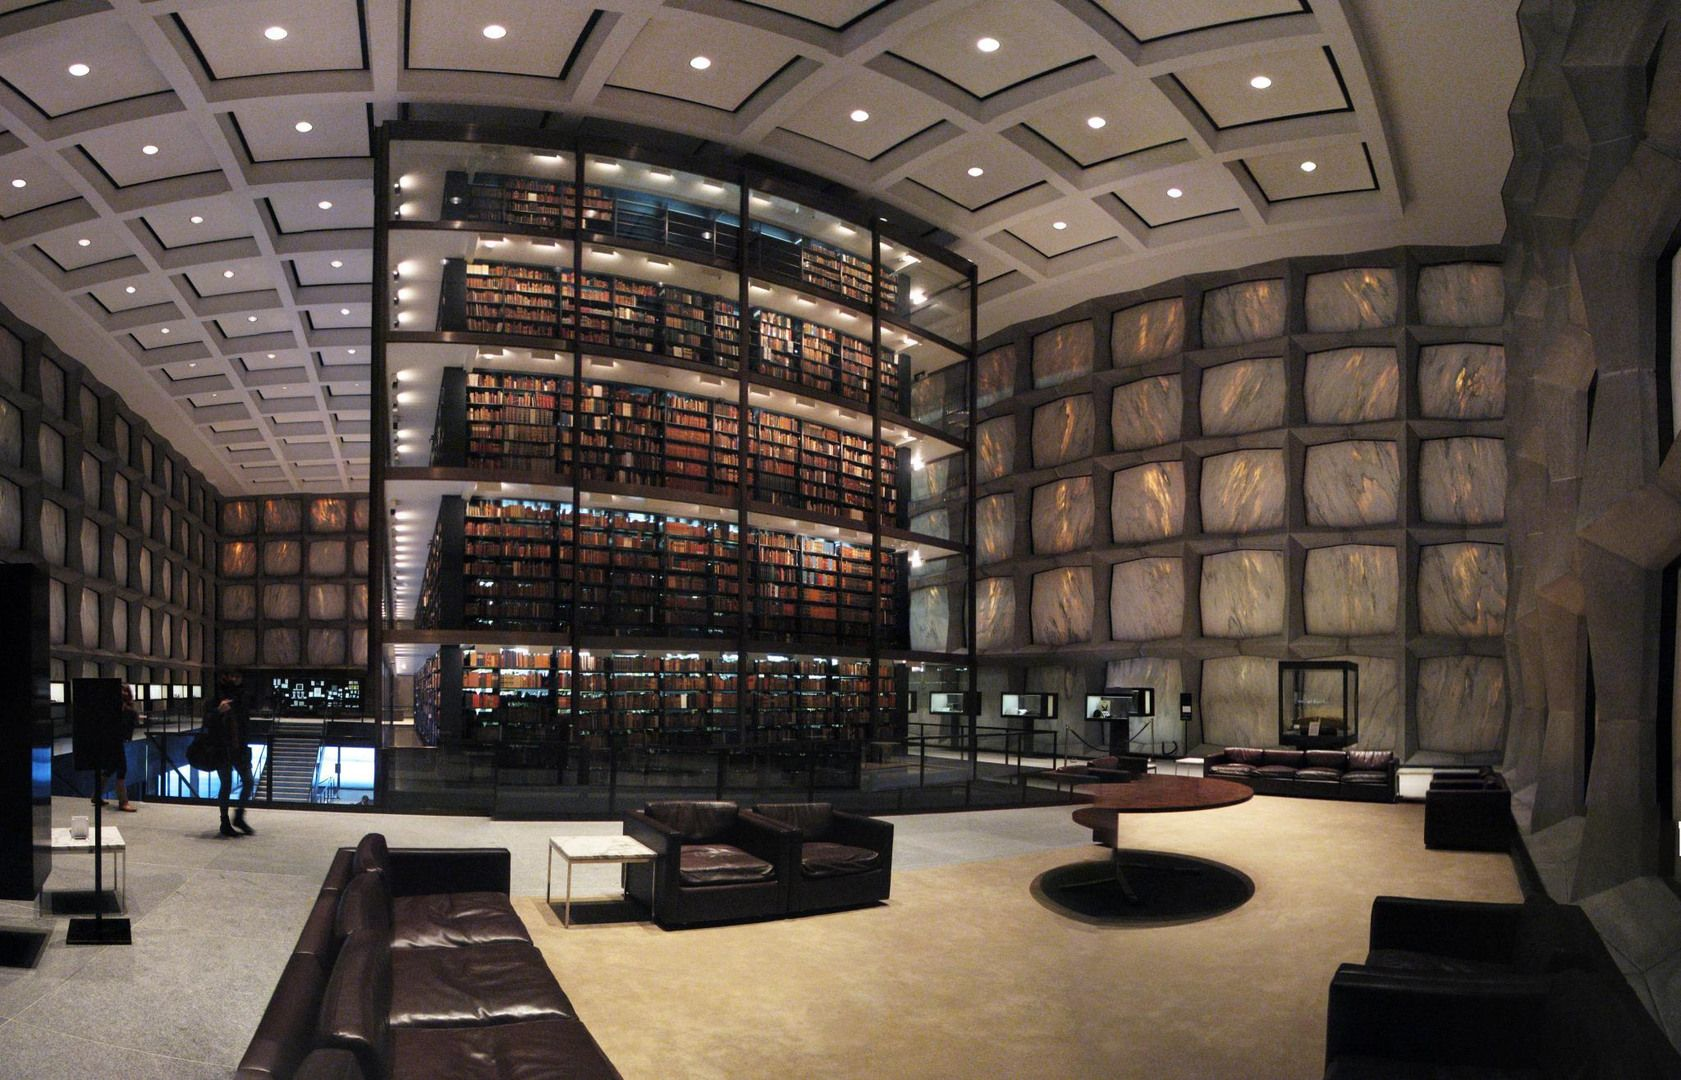 Yale University S Beinecke Rare Book And Manuscript Library Com